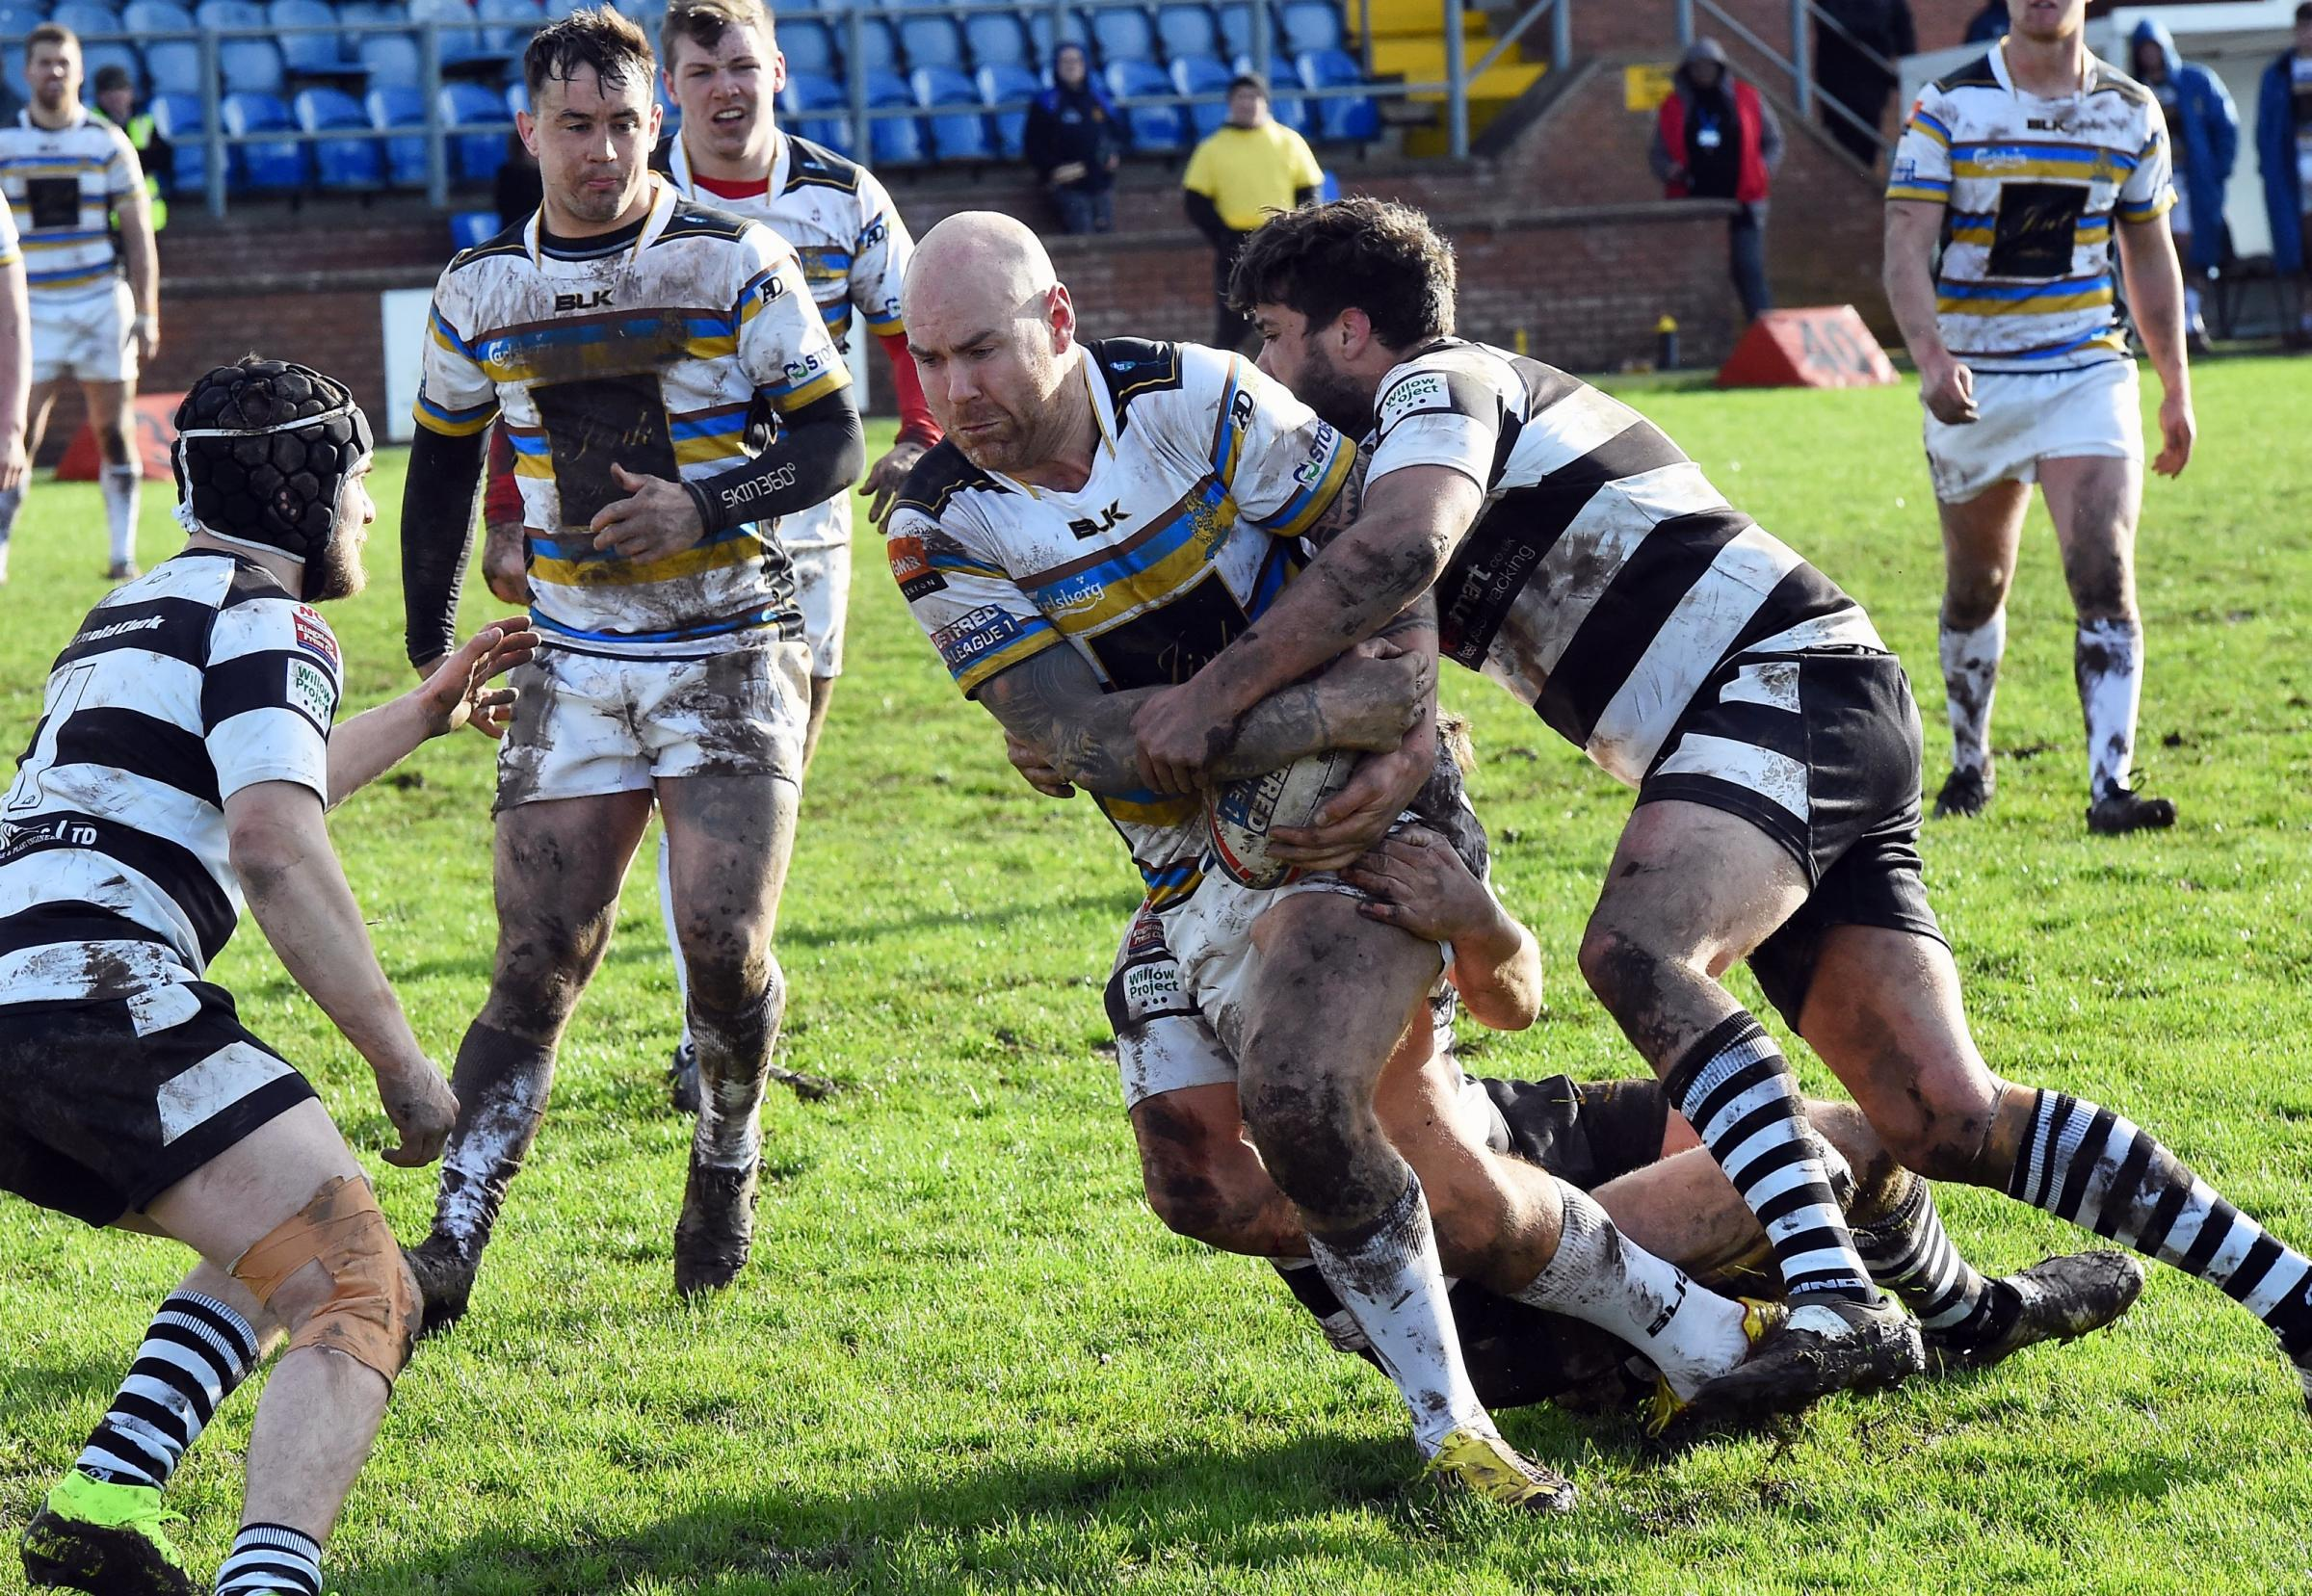 Former Barrow Raiders player and Ulverston amateur Ruairi McGoff in action for Whitehaven Picture: John Story